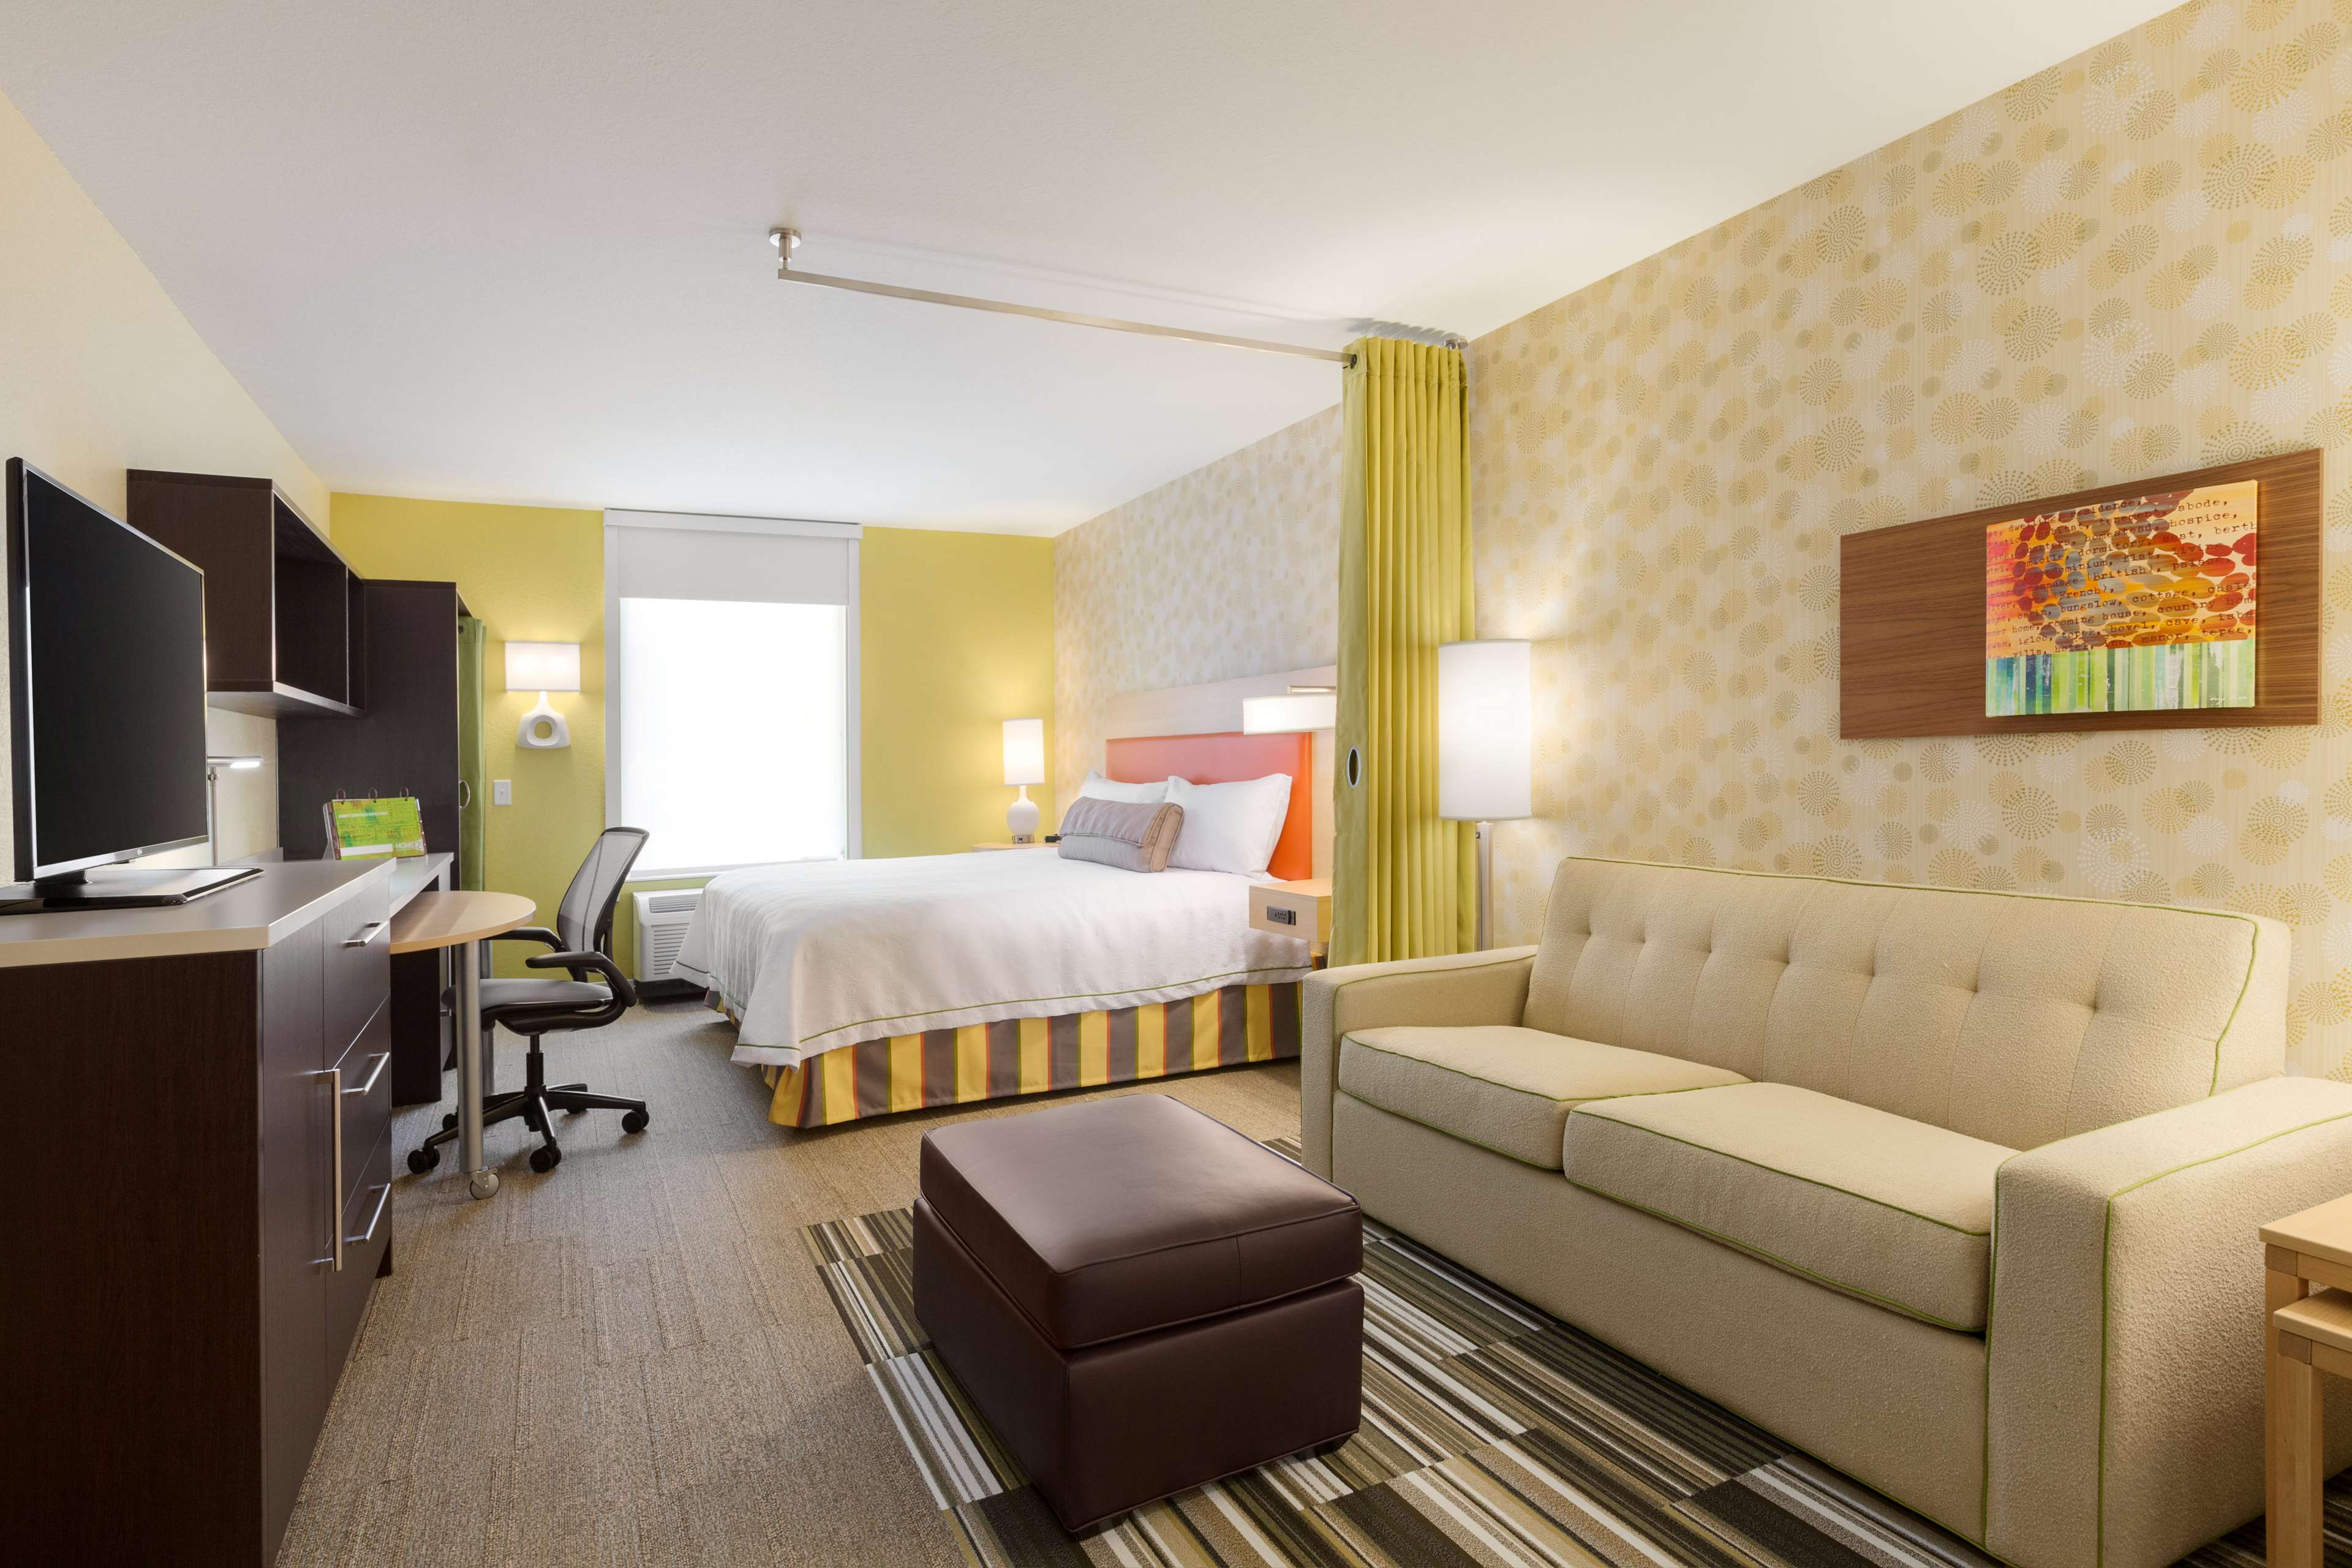 Home2 Suites By Hilton Youngstown West - Austintown image 11